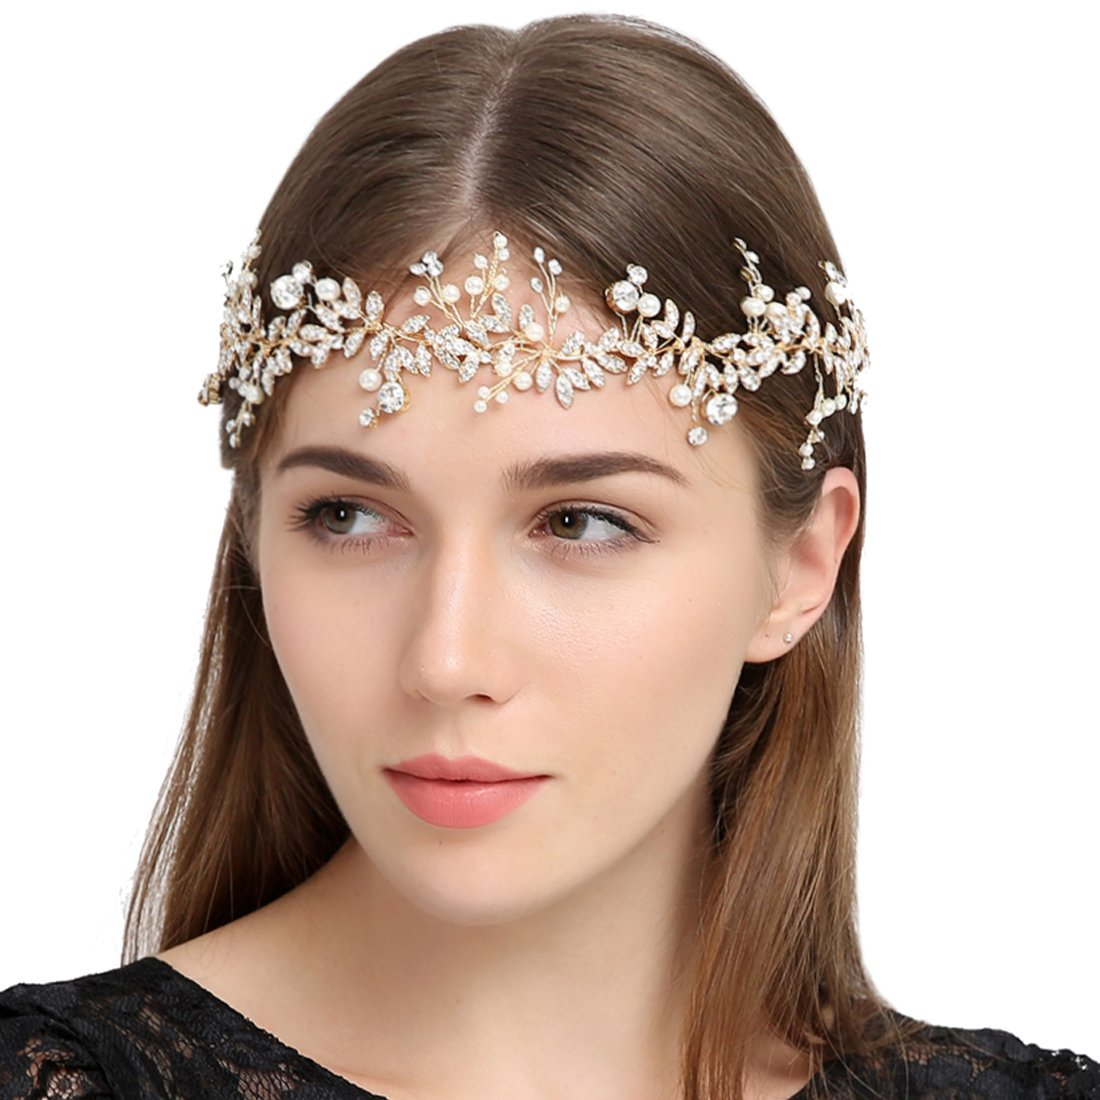 Wedding Hairstyles With Headpieces: Wedding Head Band Bridal Hair Accessory Headpieces Gold